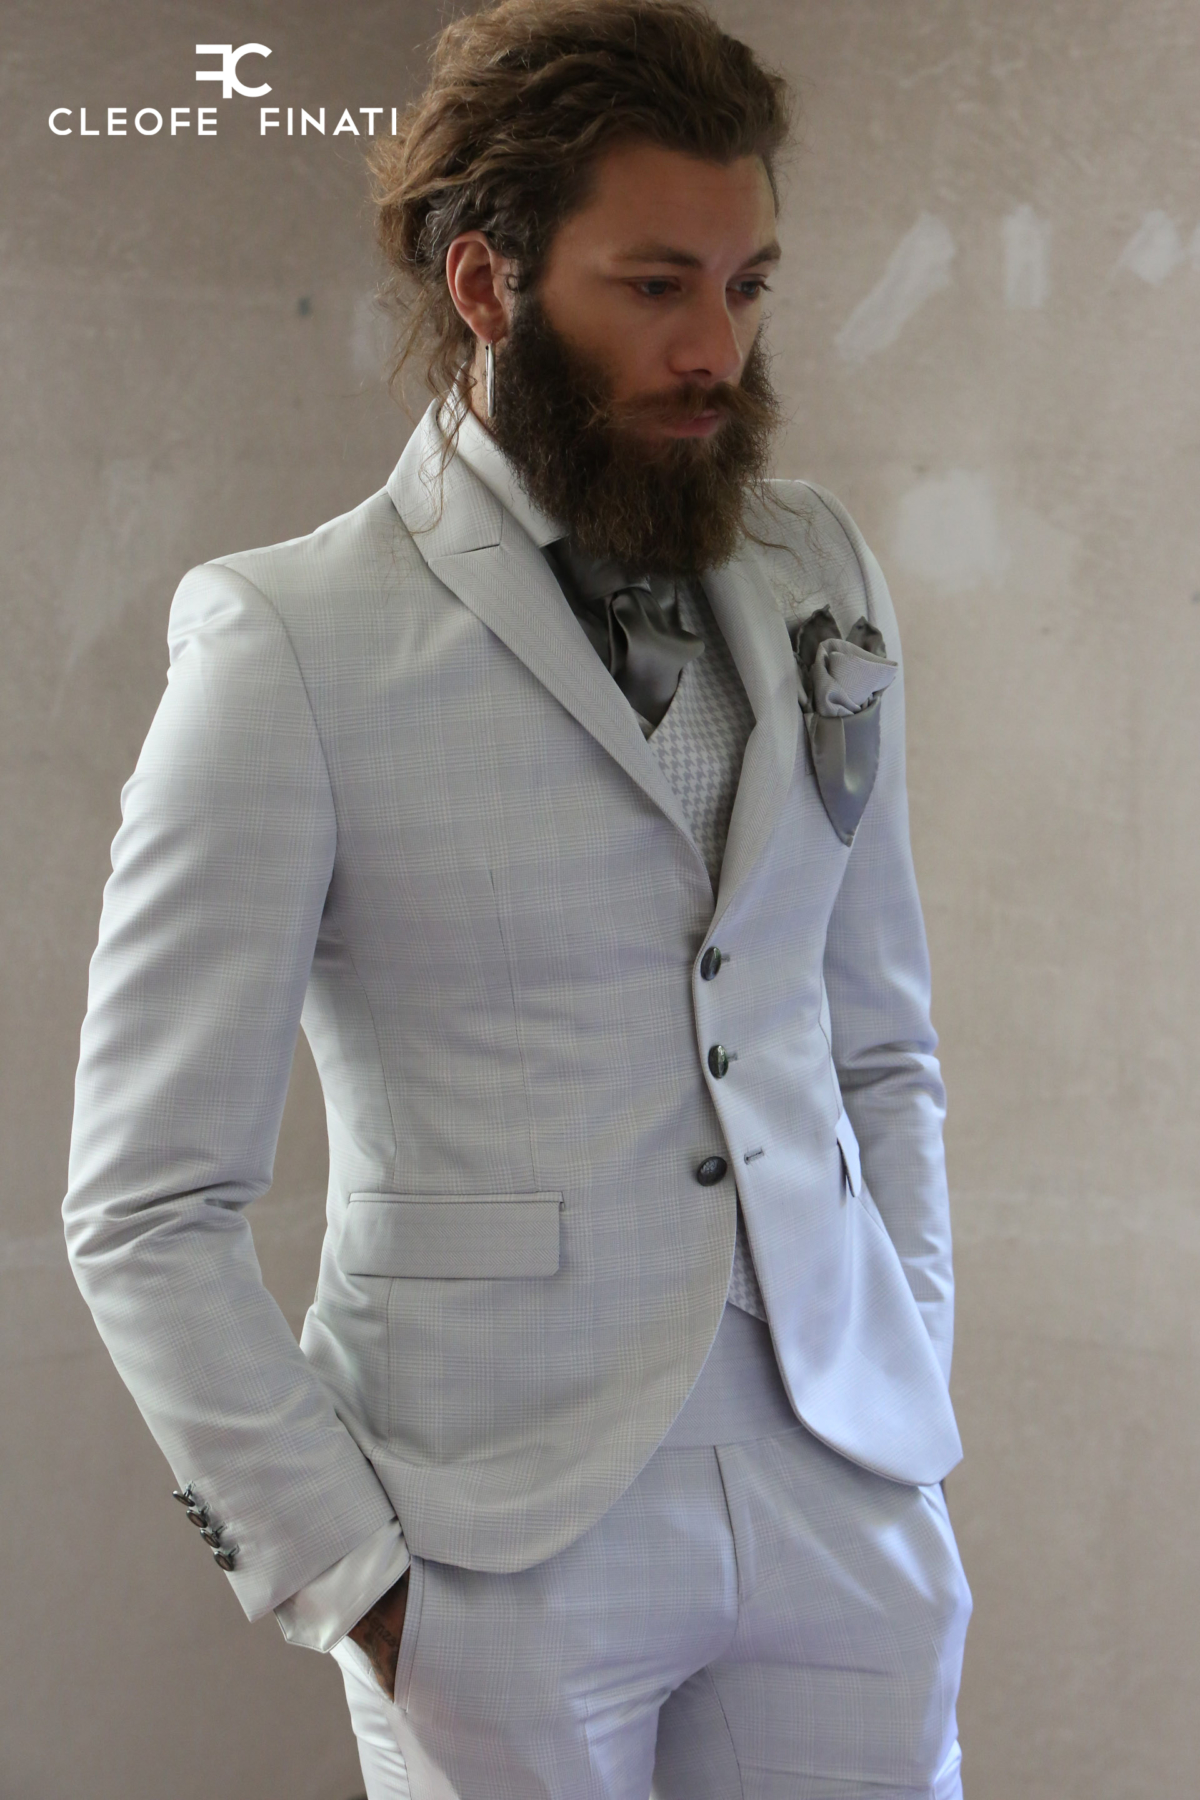 Andrea Marcaccini wears a suit of the Luxury Collection by Cleofe Finati